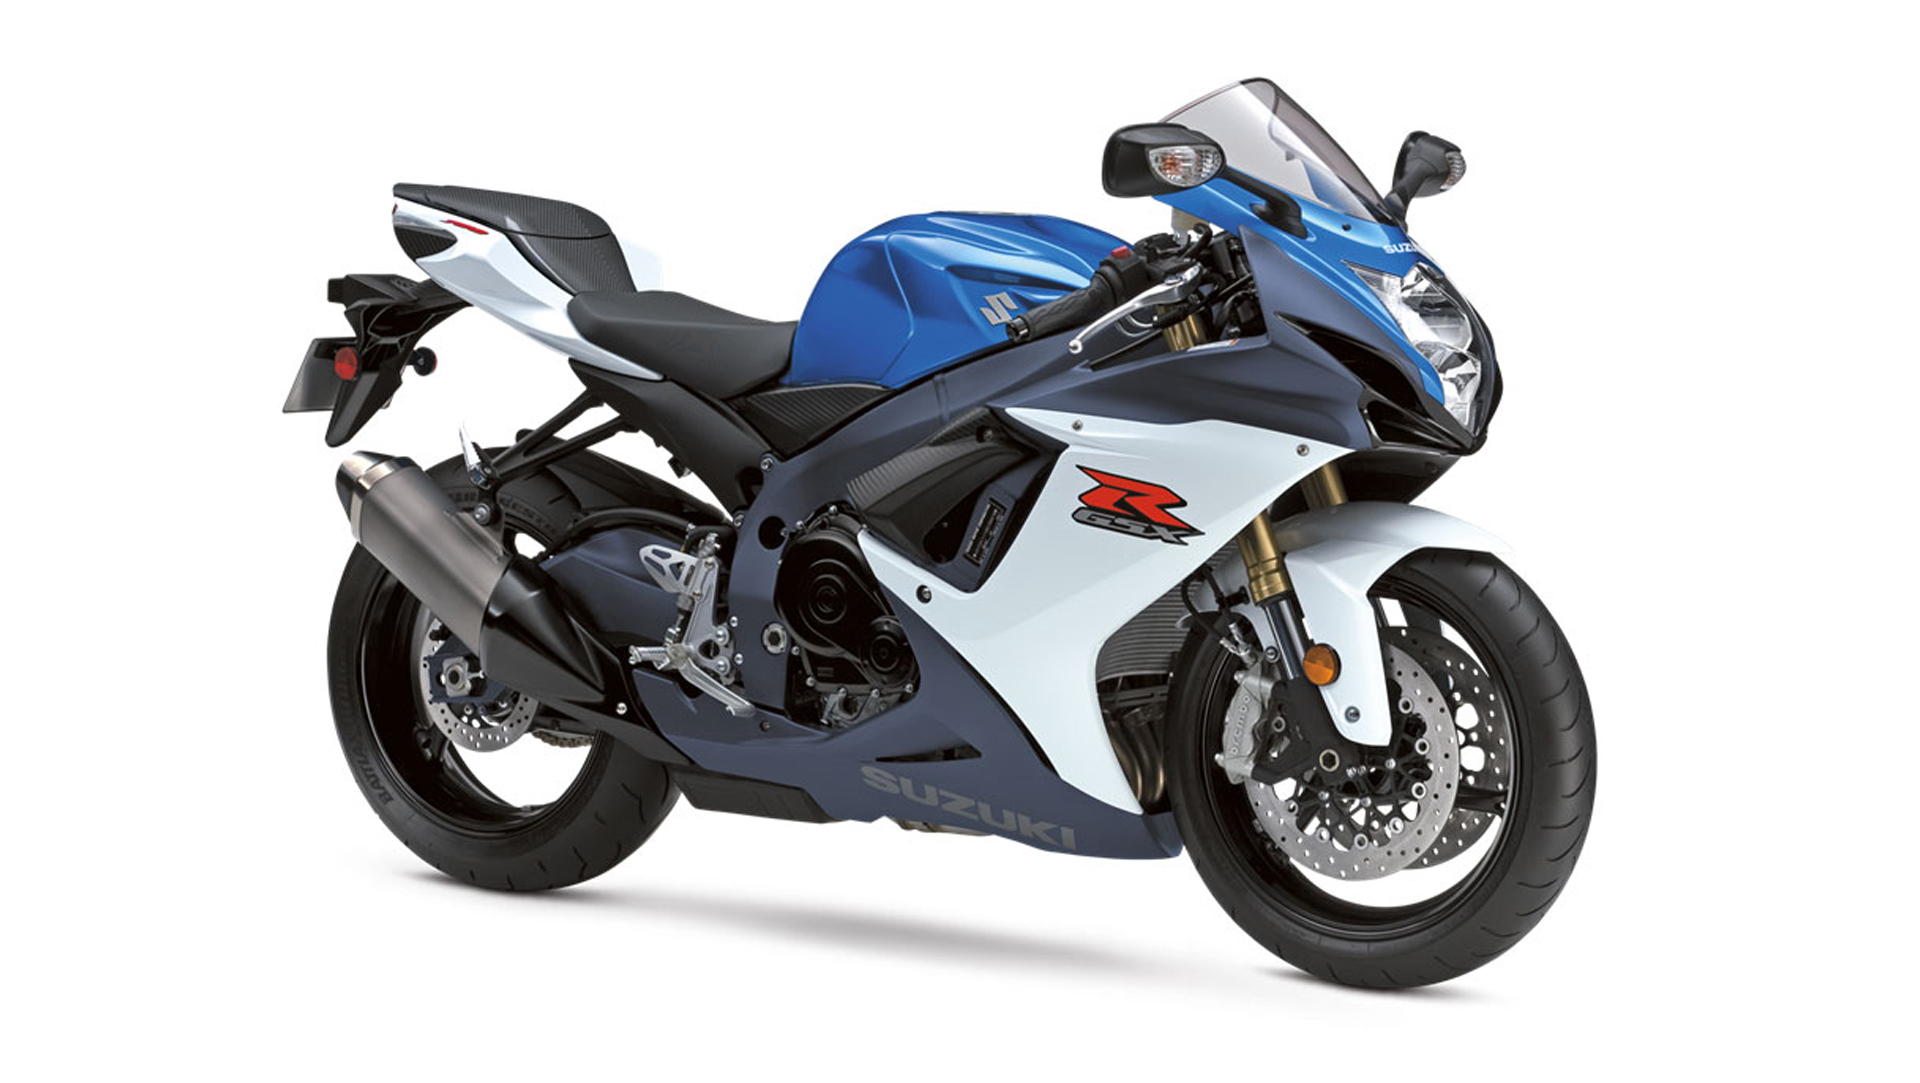 2012 suzuki gsx r 750 pics specs and information. Black Bedroom Furniture Sets. Home Design Ideas